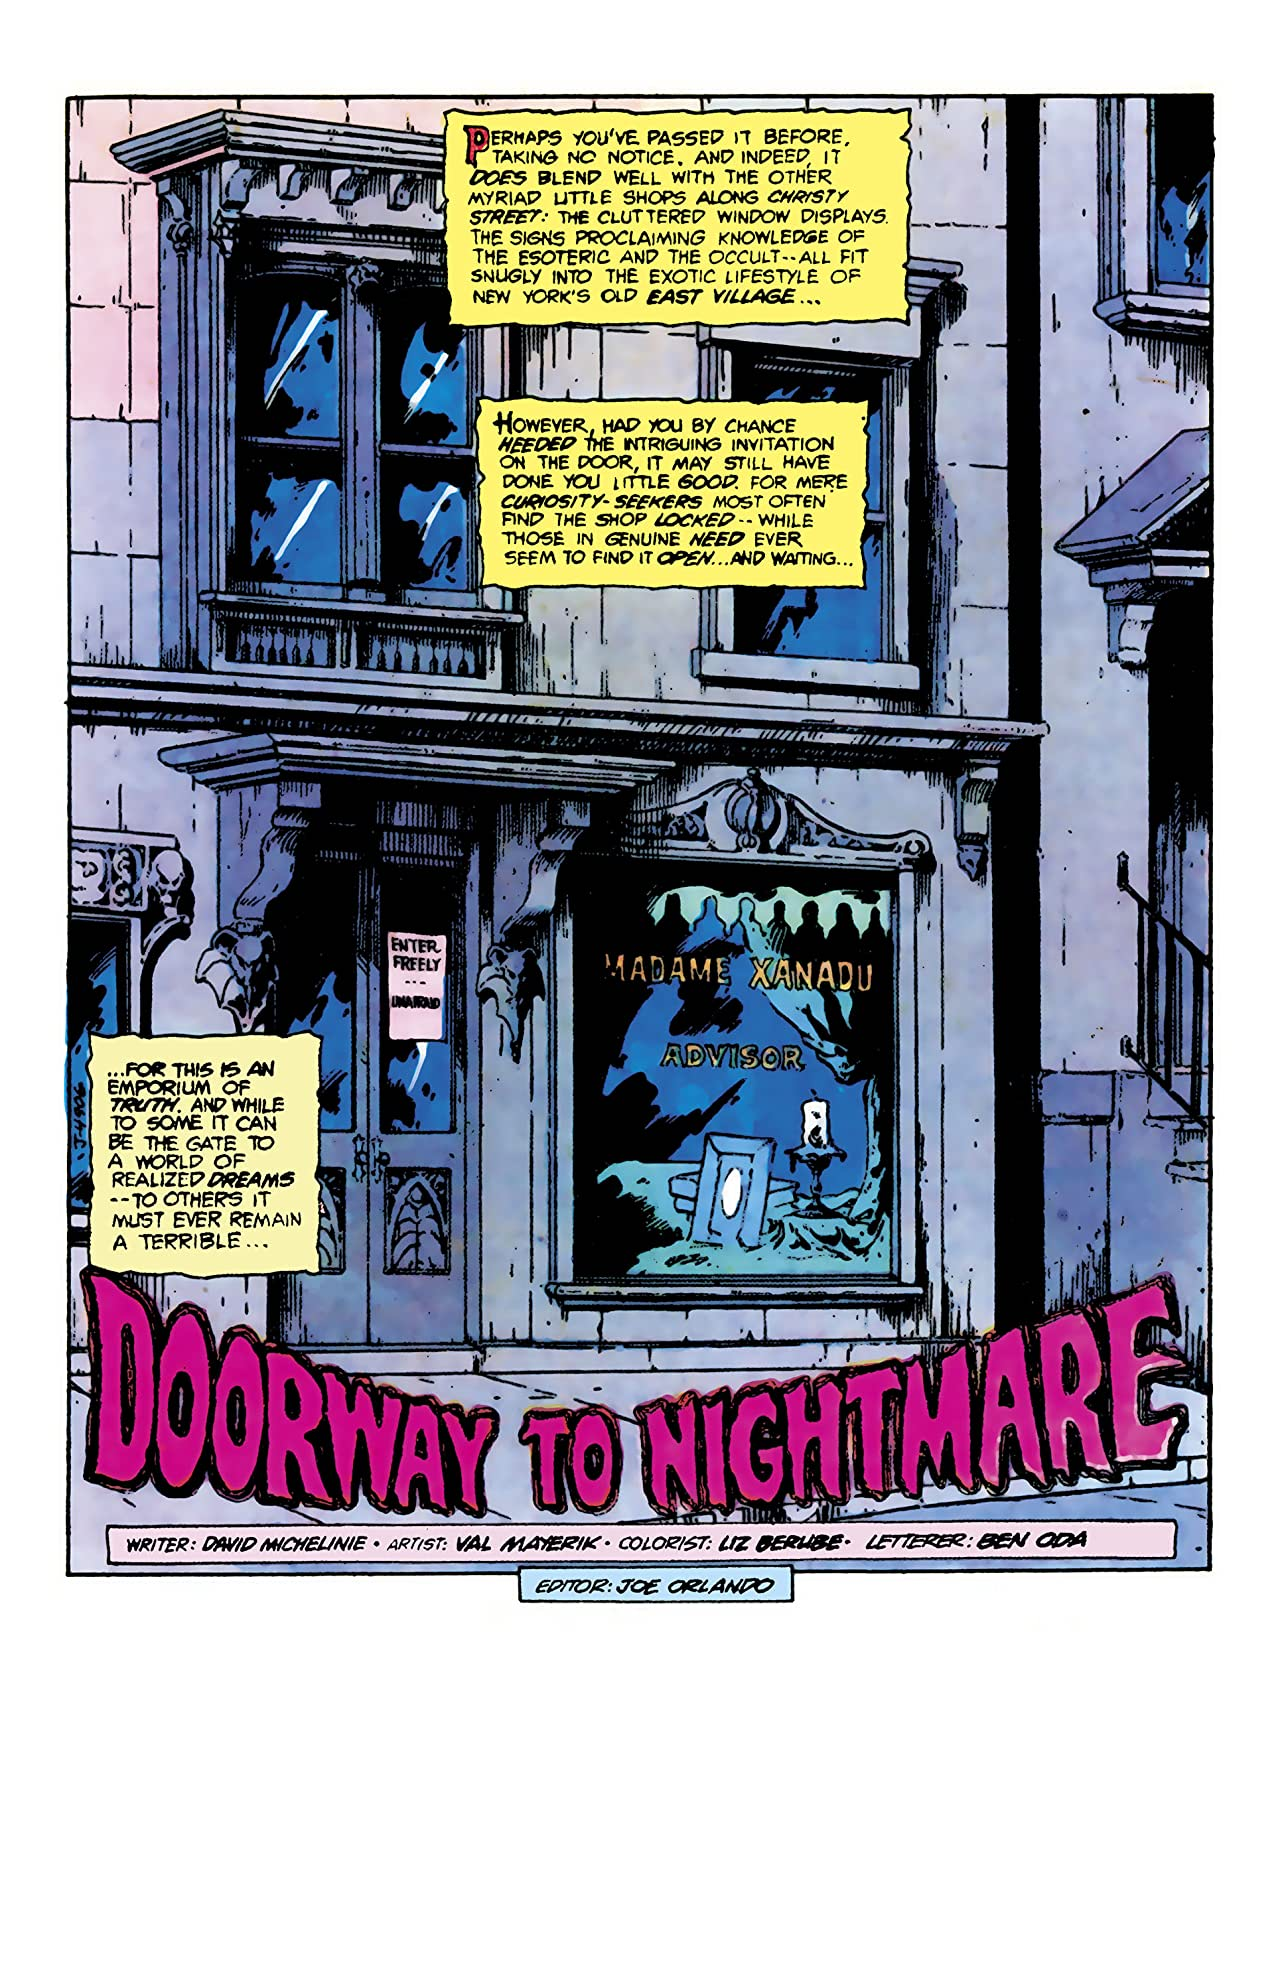 Doorway to Nightmare (1978) #1